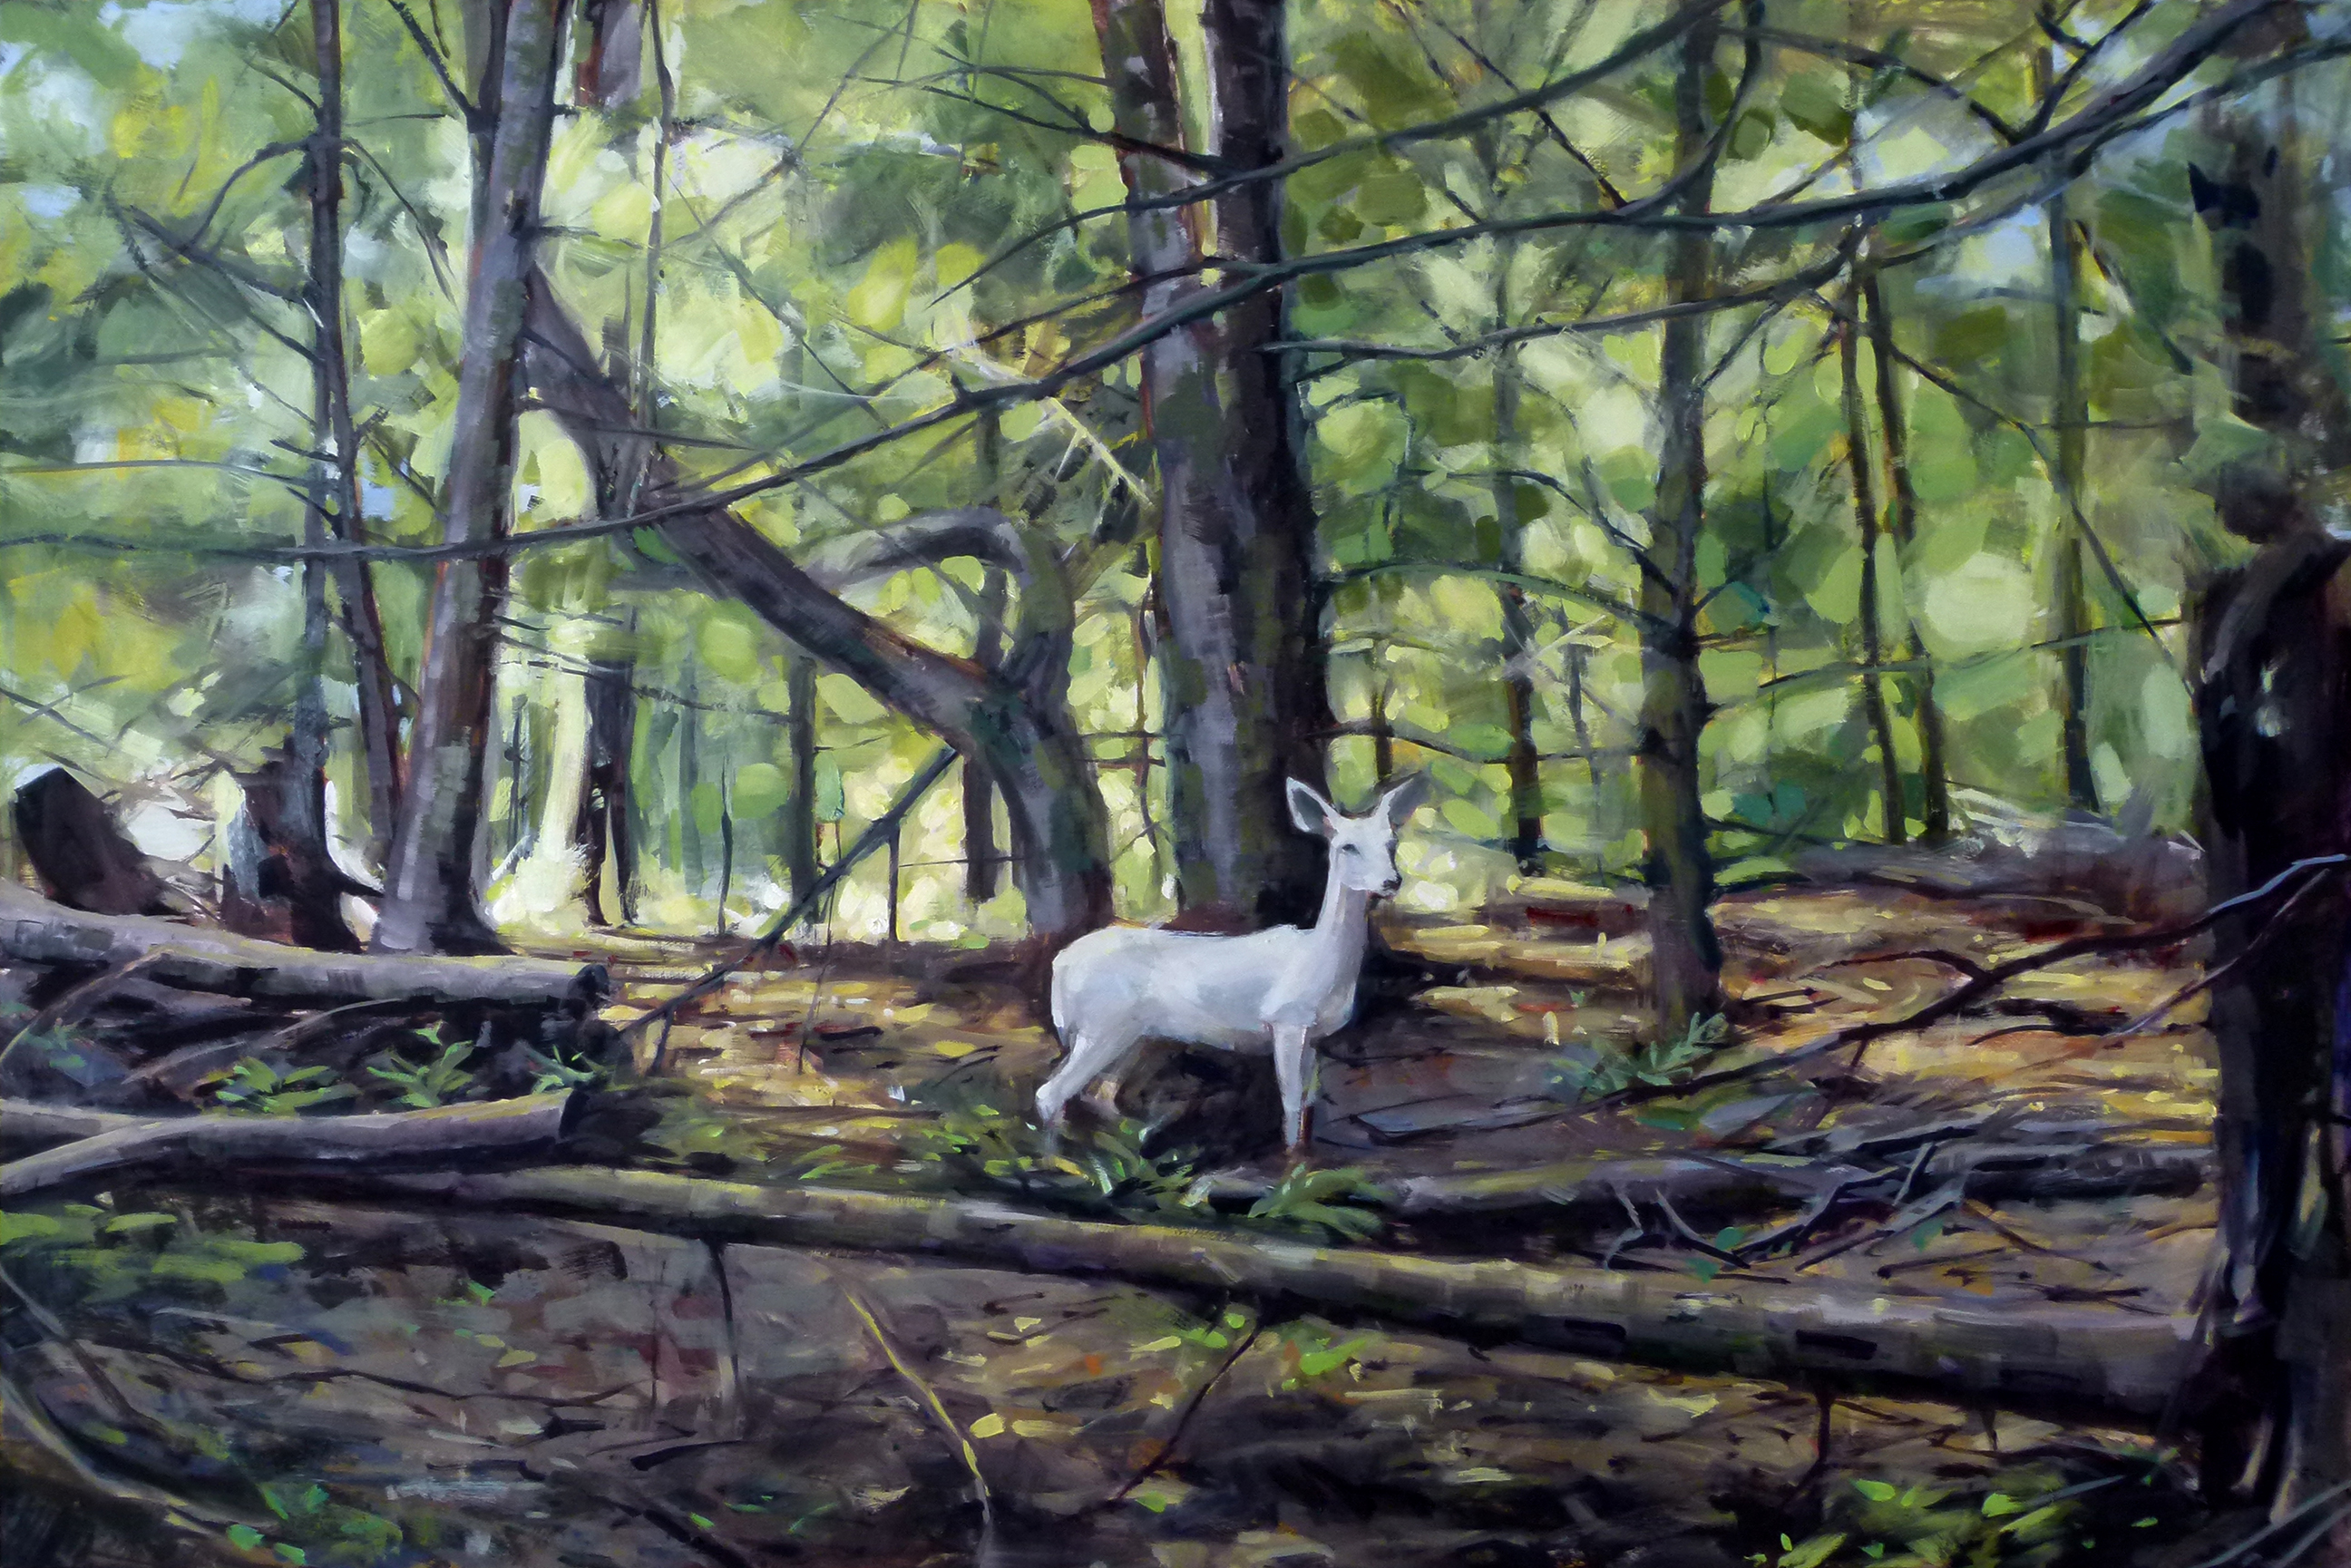 Oil painting, original artwork, focused on a white doe surrounded by forest foliage, with sunlight pouring in from behind; symbolism, environment, nature.